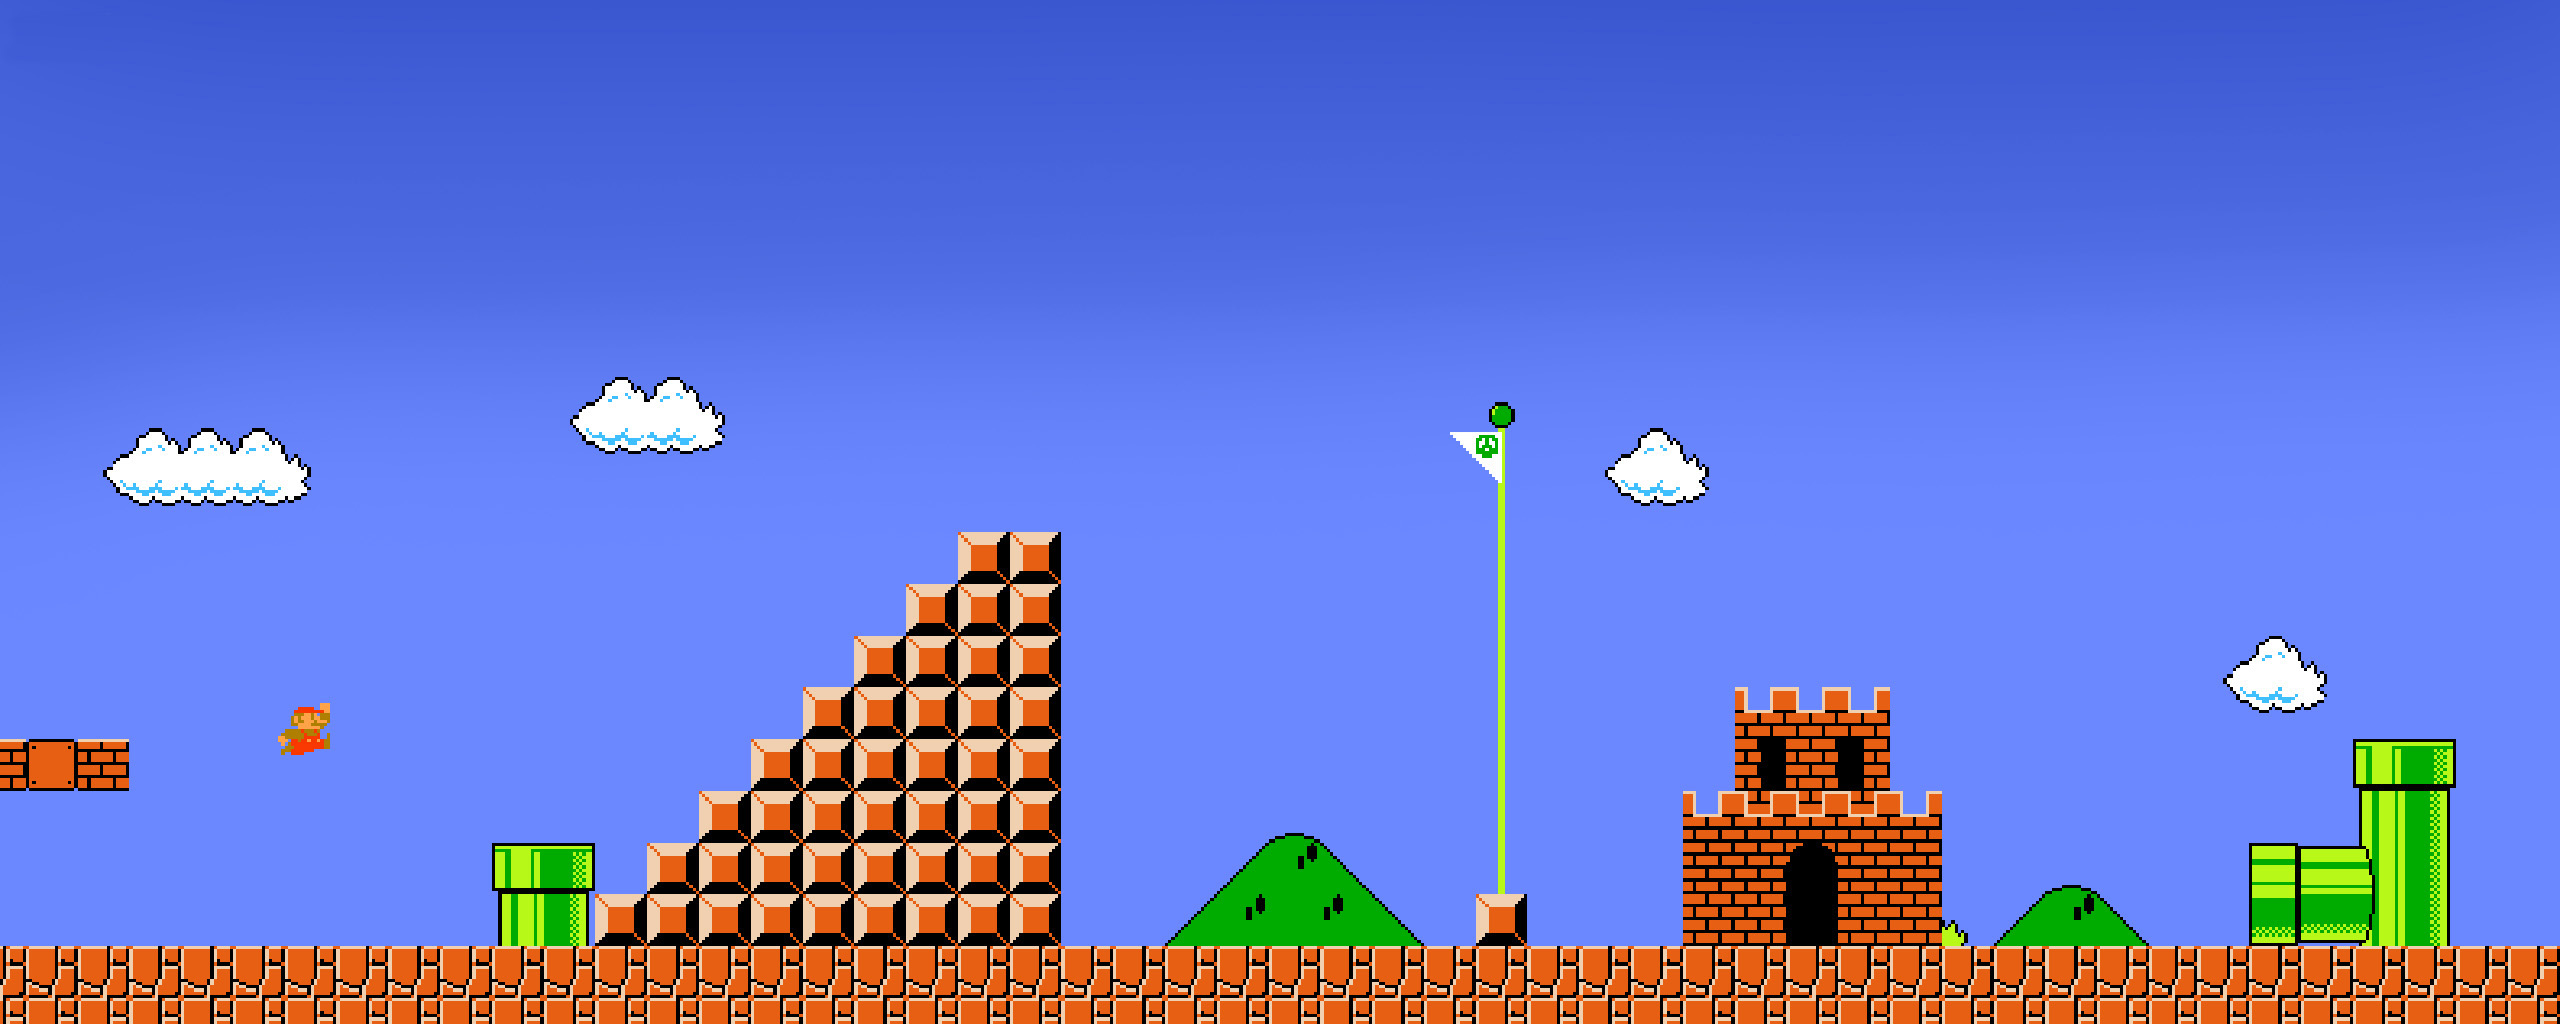 mario wallpaper splendid